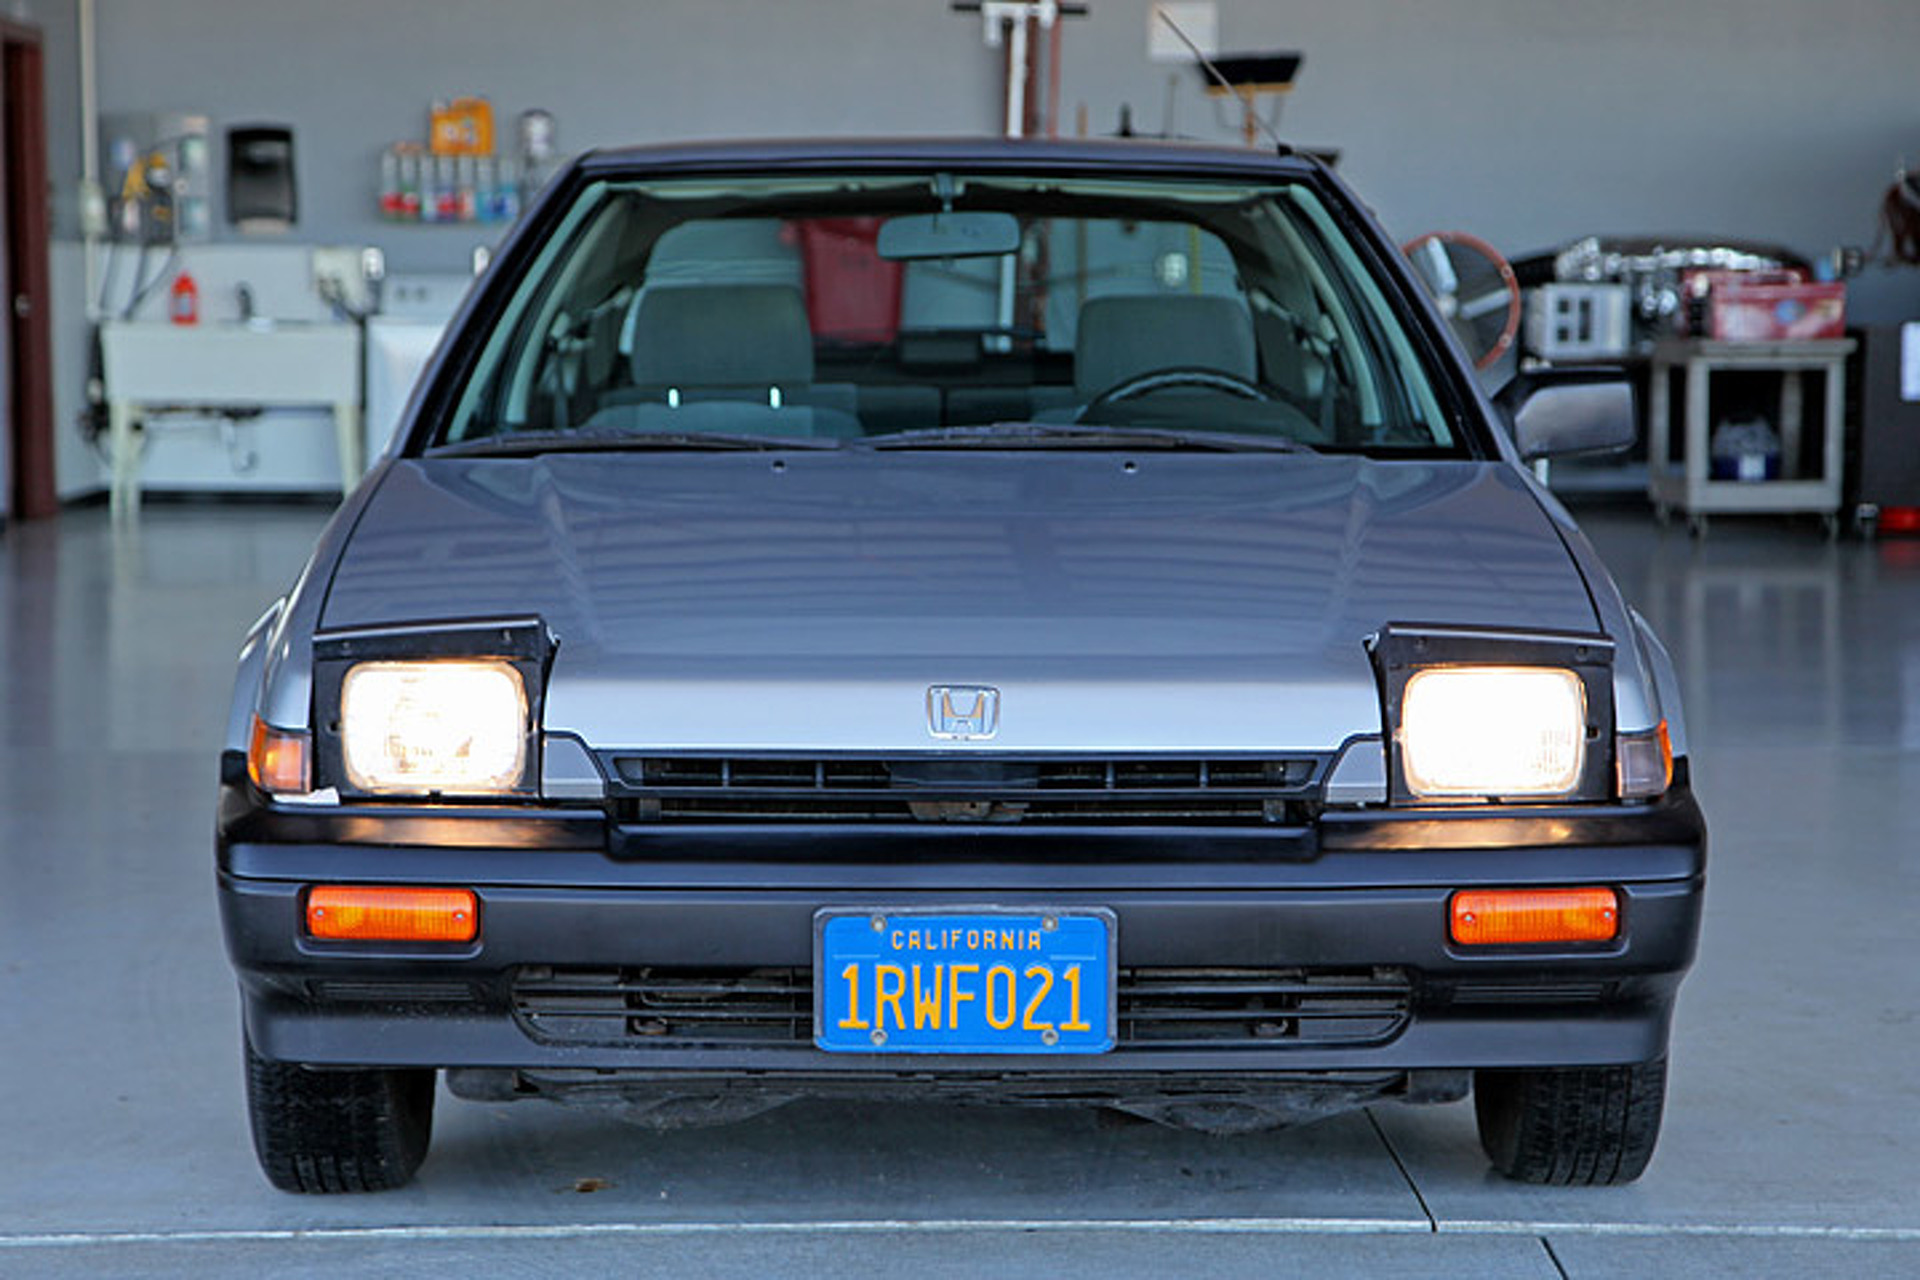 After 30 Years, This '86 Honda Accord Still Looks nd New